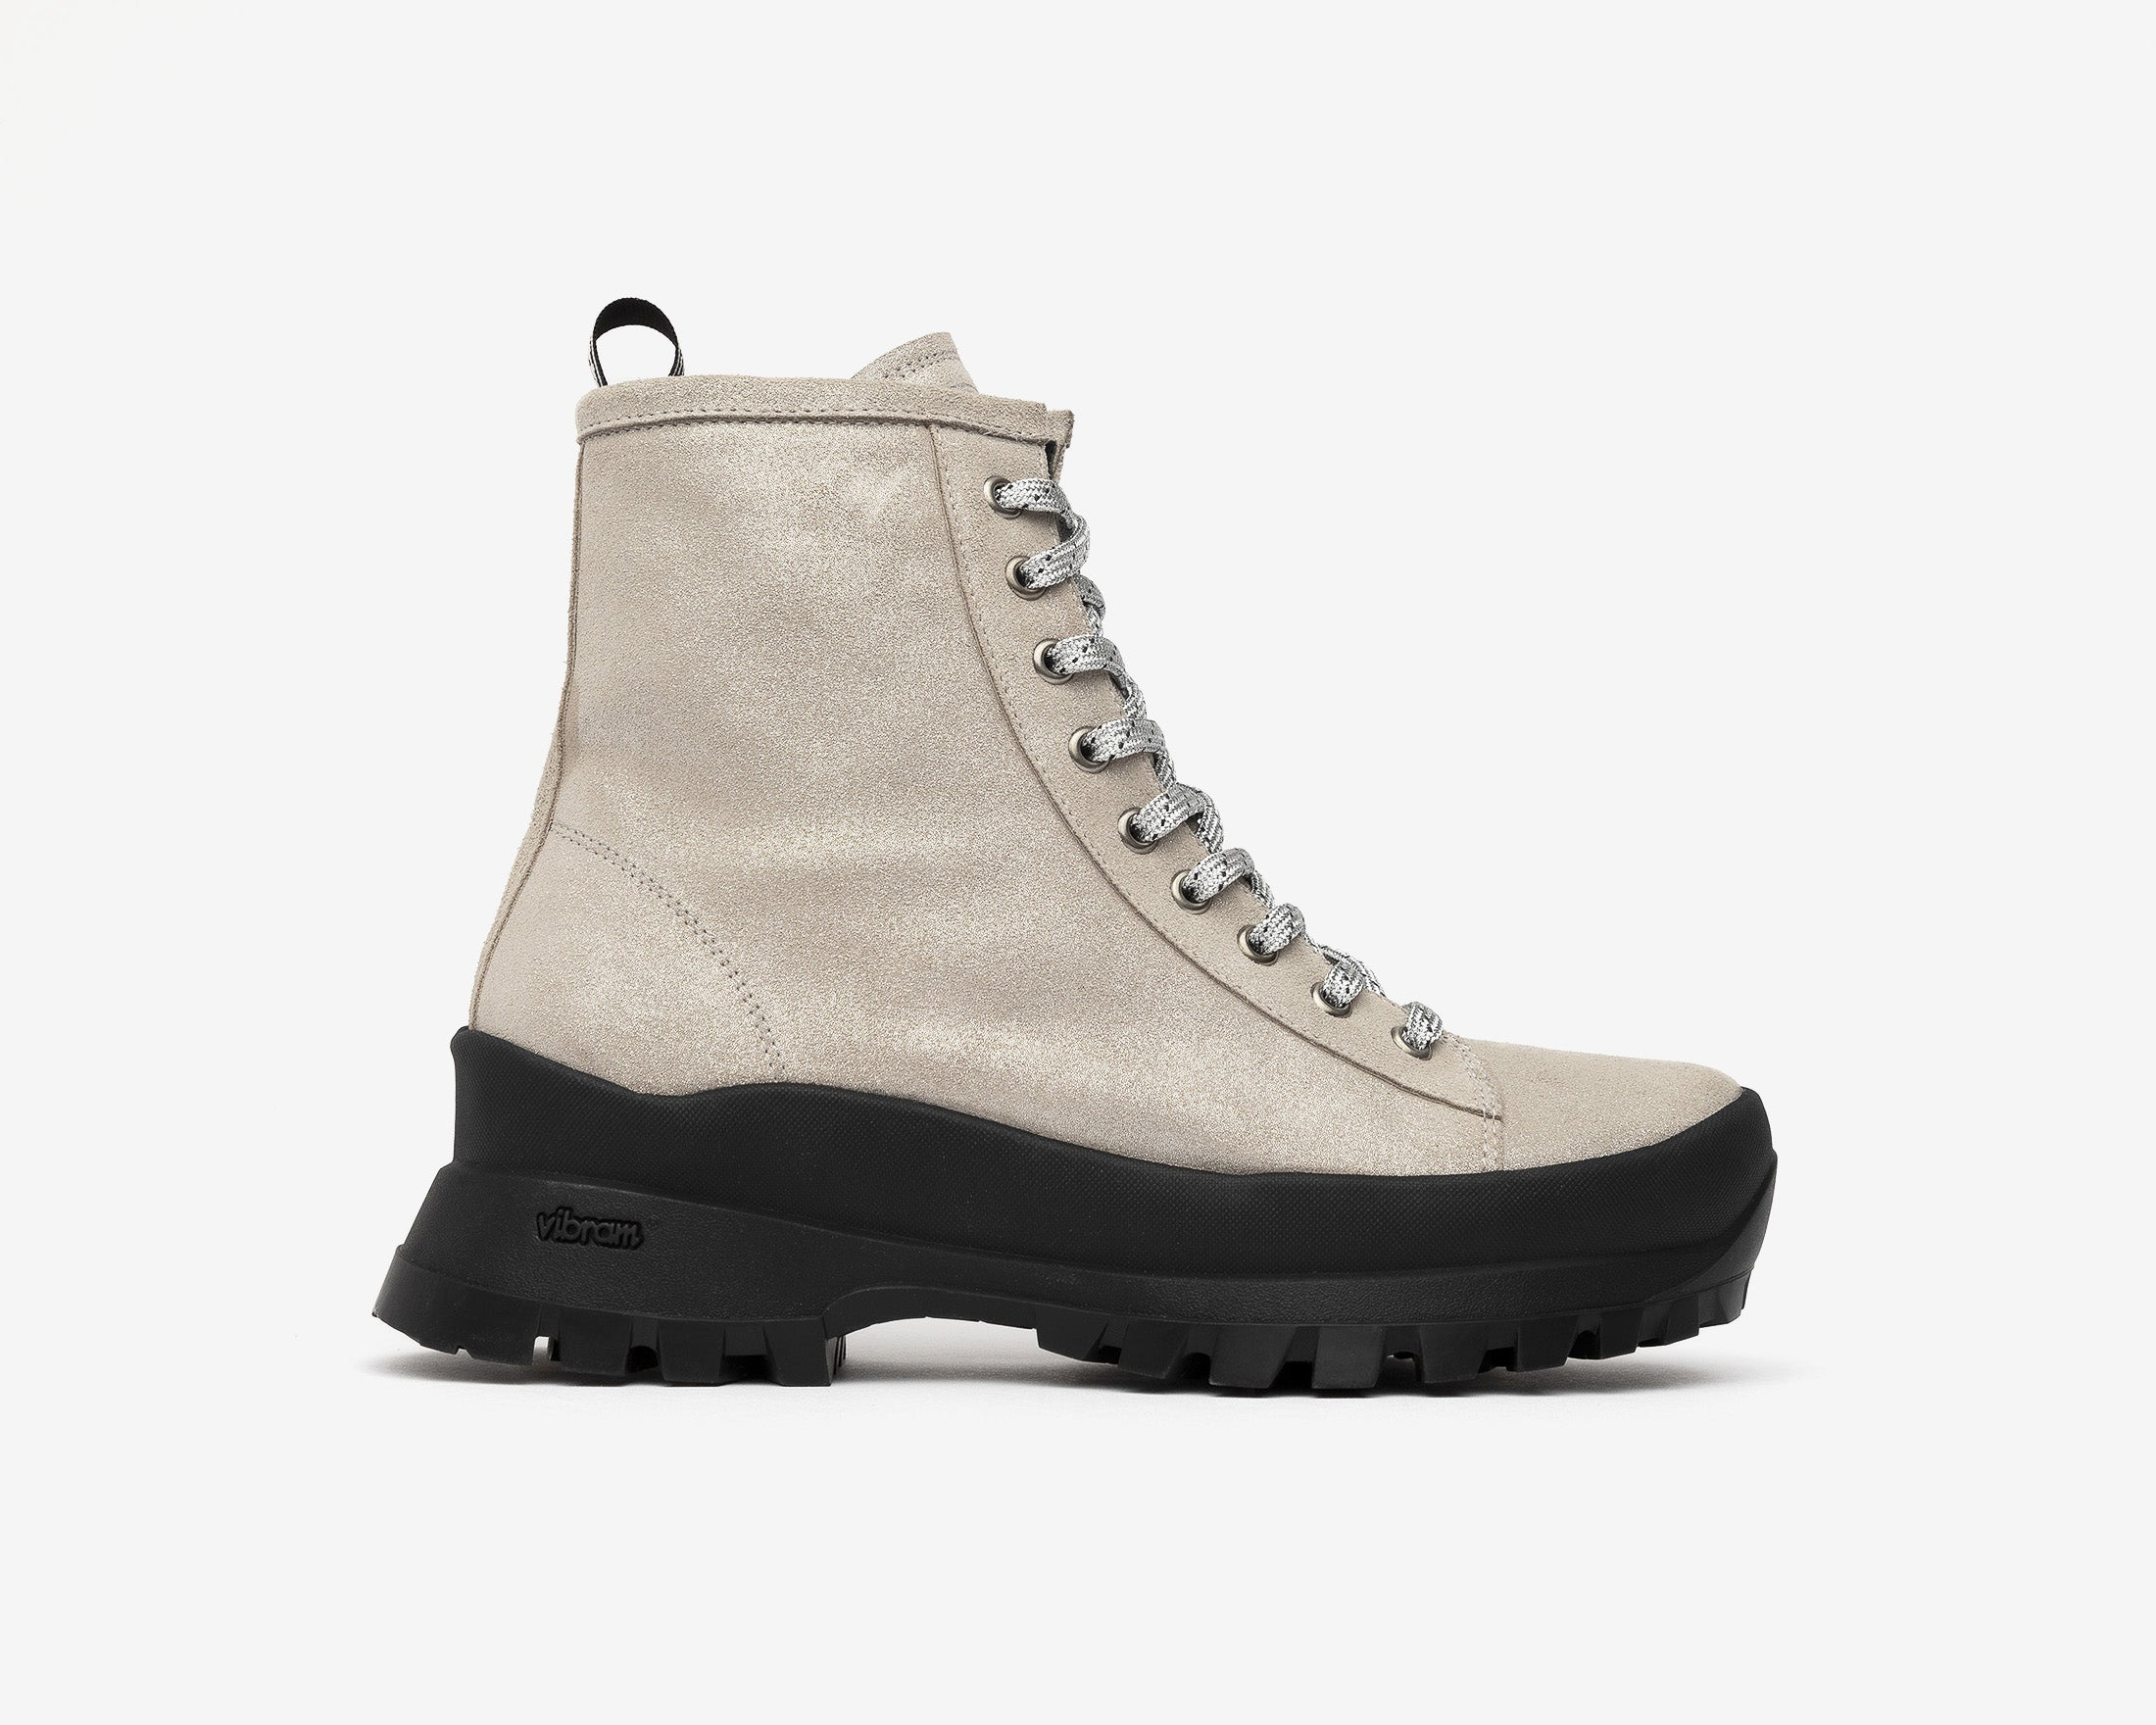 Denise Combat Boot with Vibram bottom in Spark - Profile